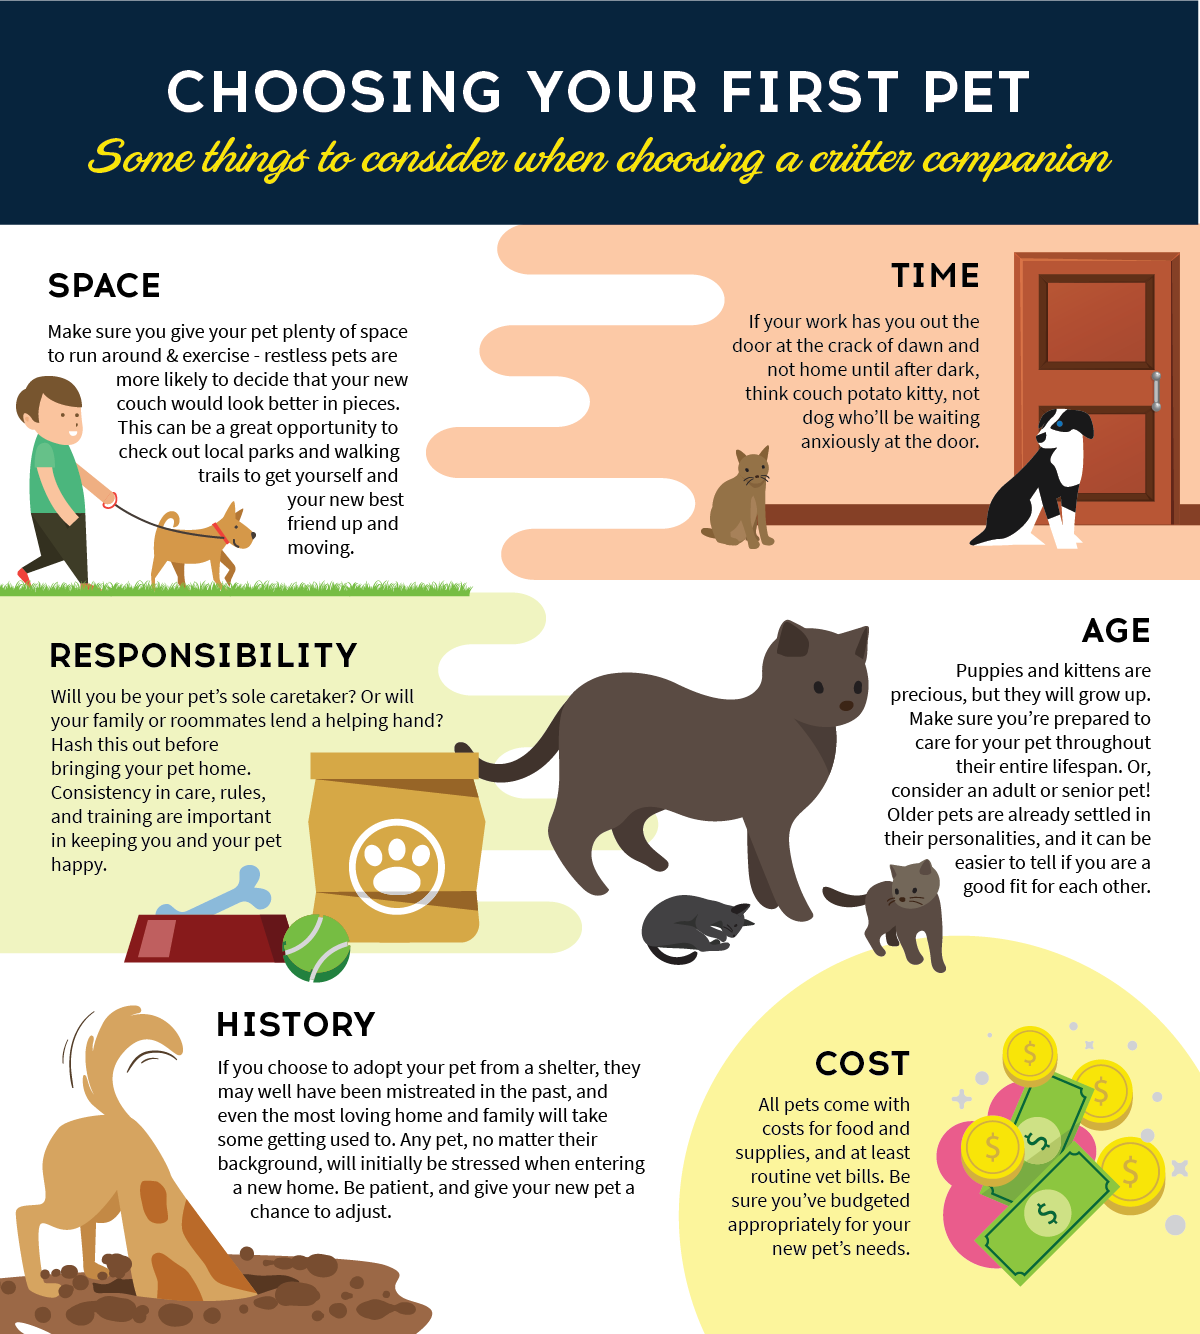 Choosing Your First Pet In 2020 Pets Your Pet After Dark